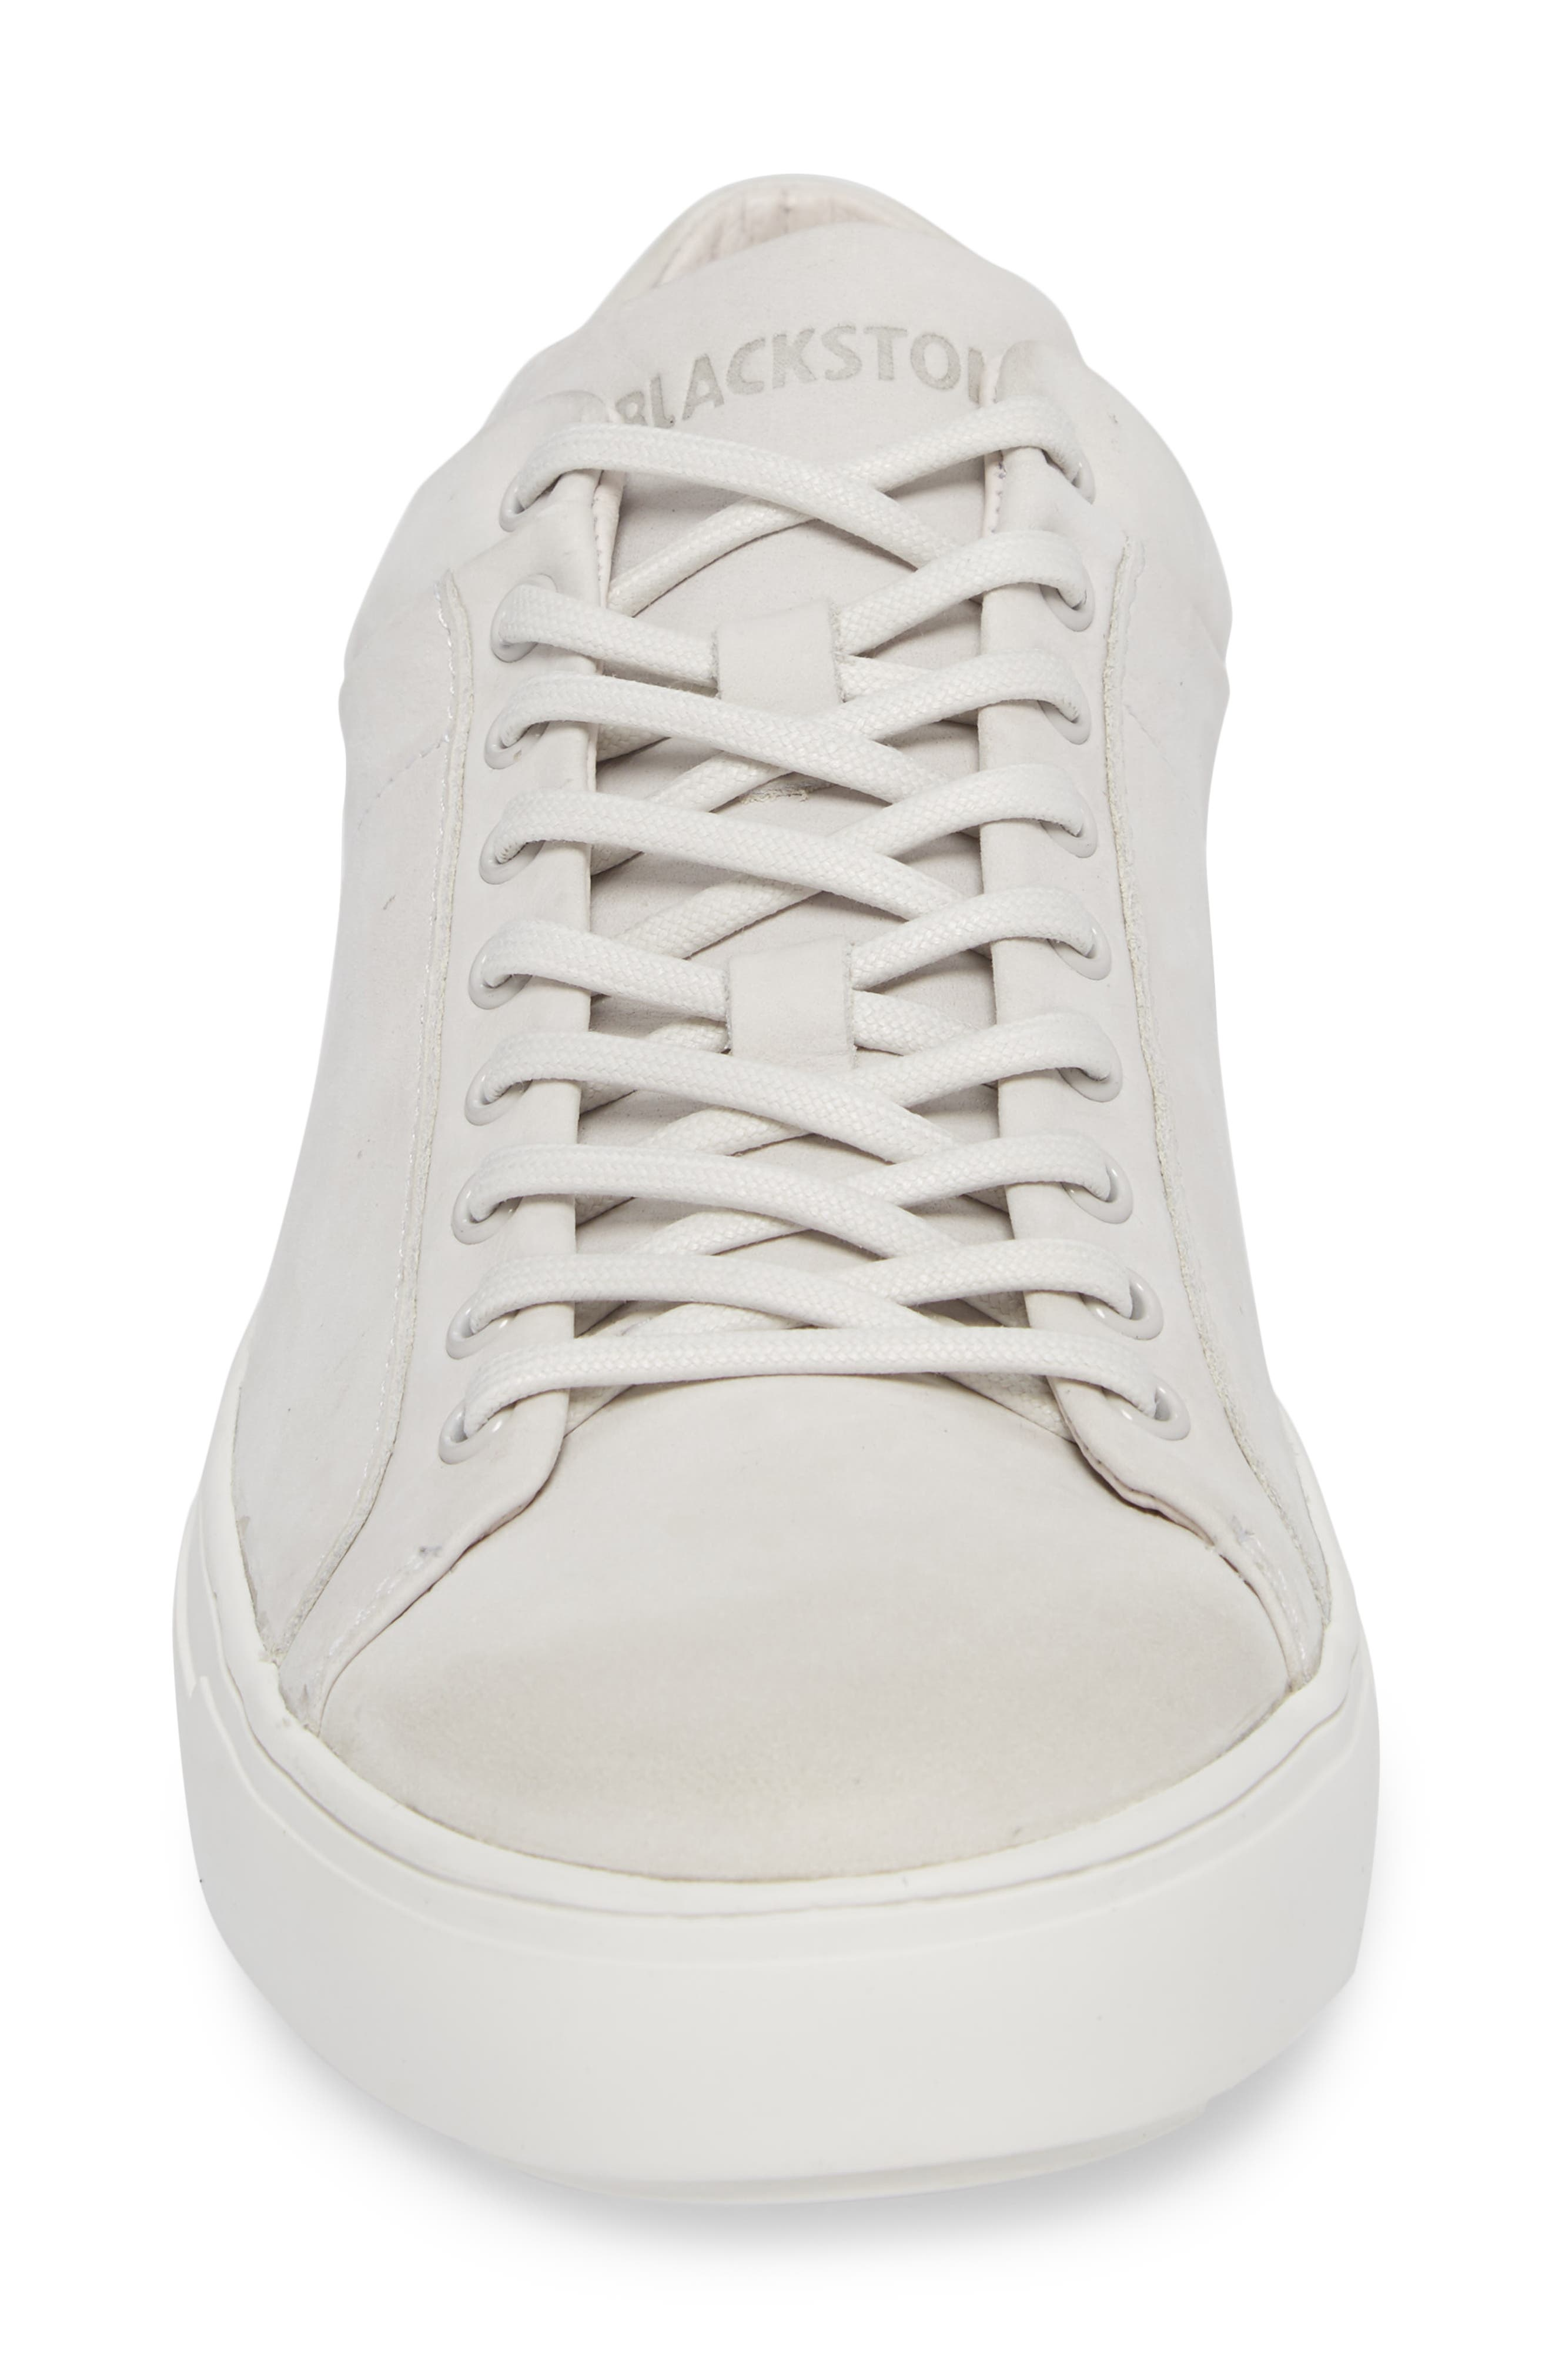 PM56 Low Top Sneaker,                             Alternate thumbnail 4, color,                             Wind Chime Leather